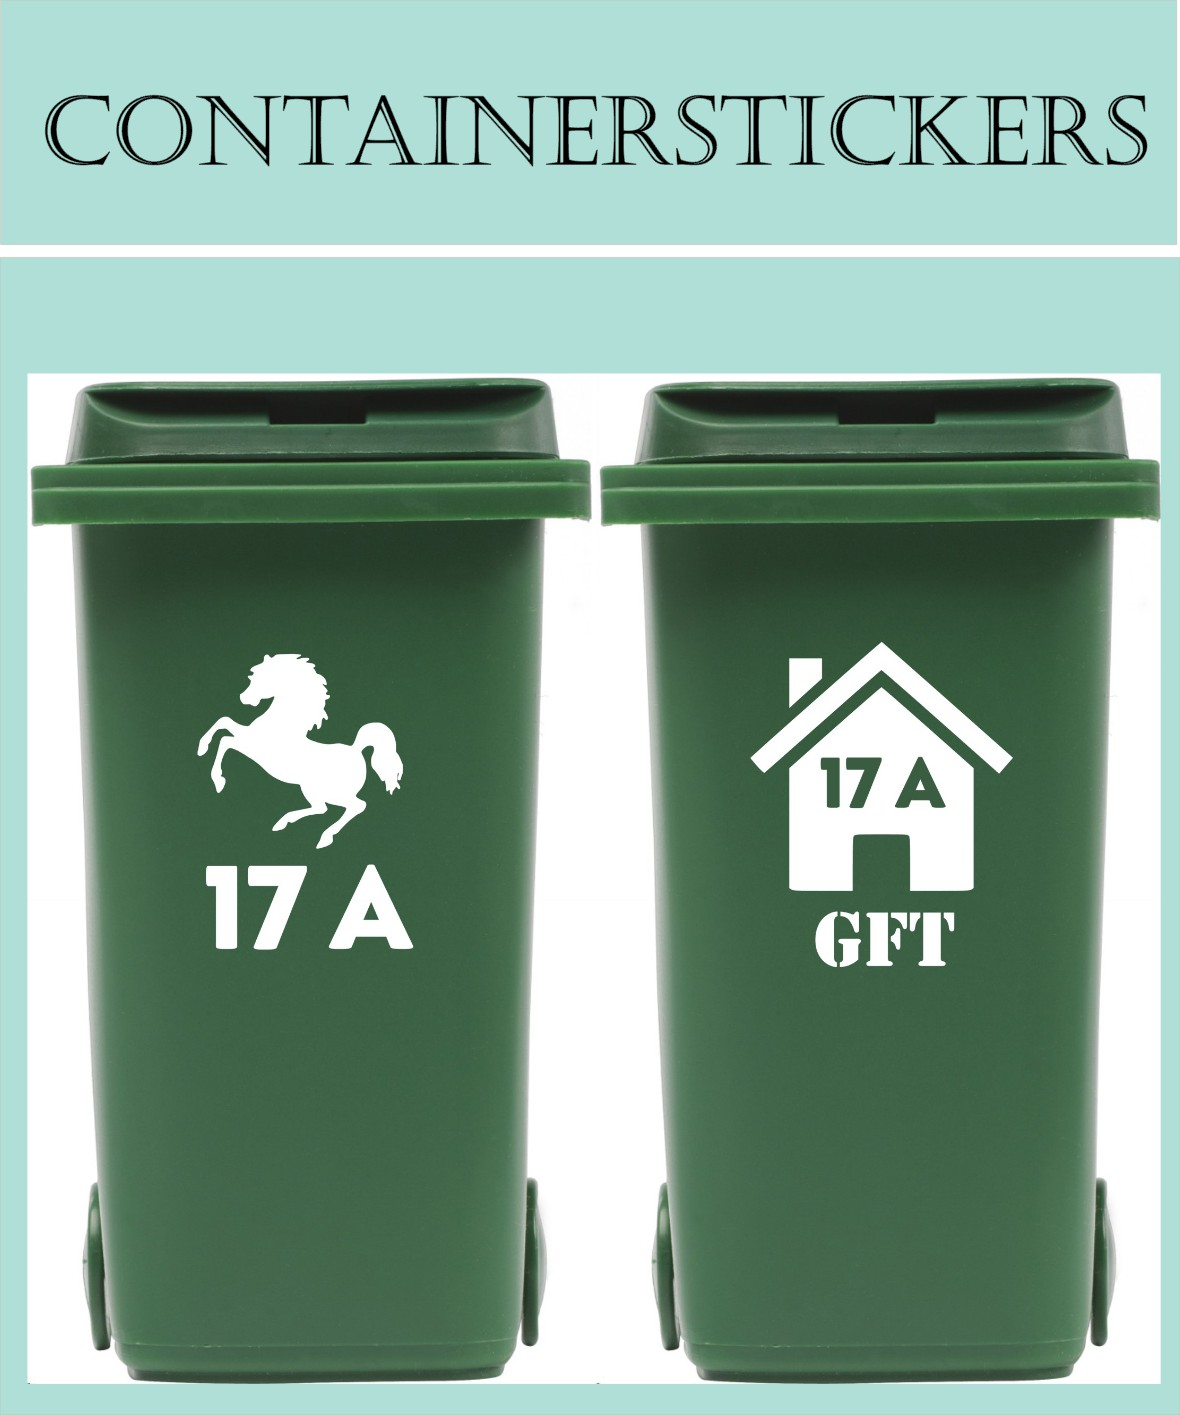 Container stickers